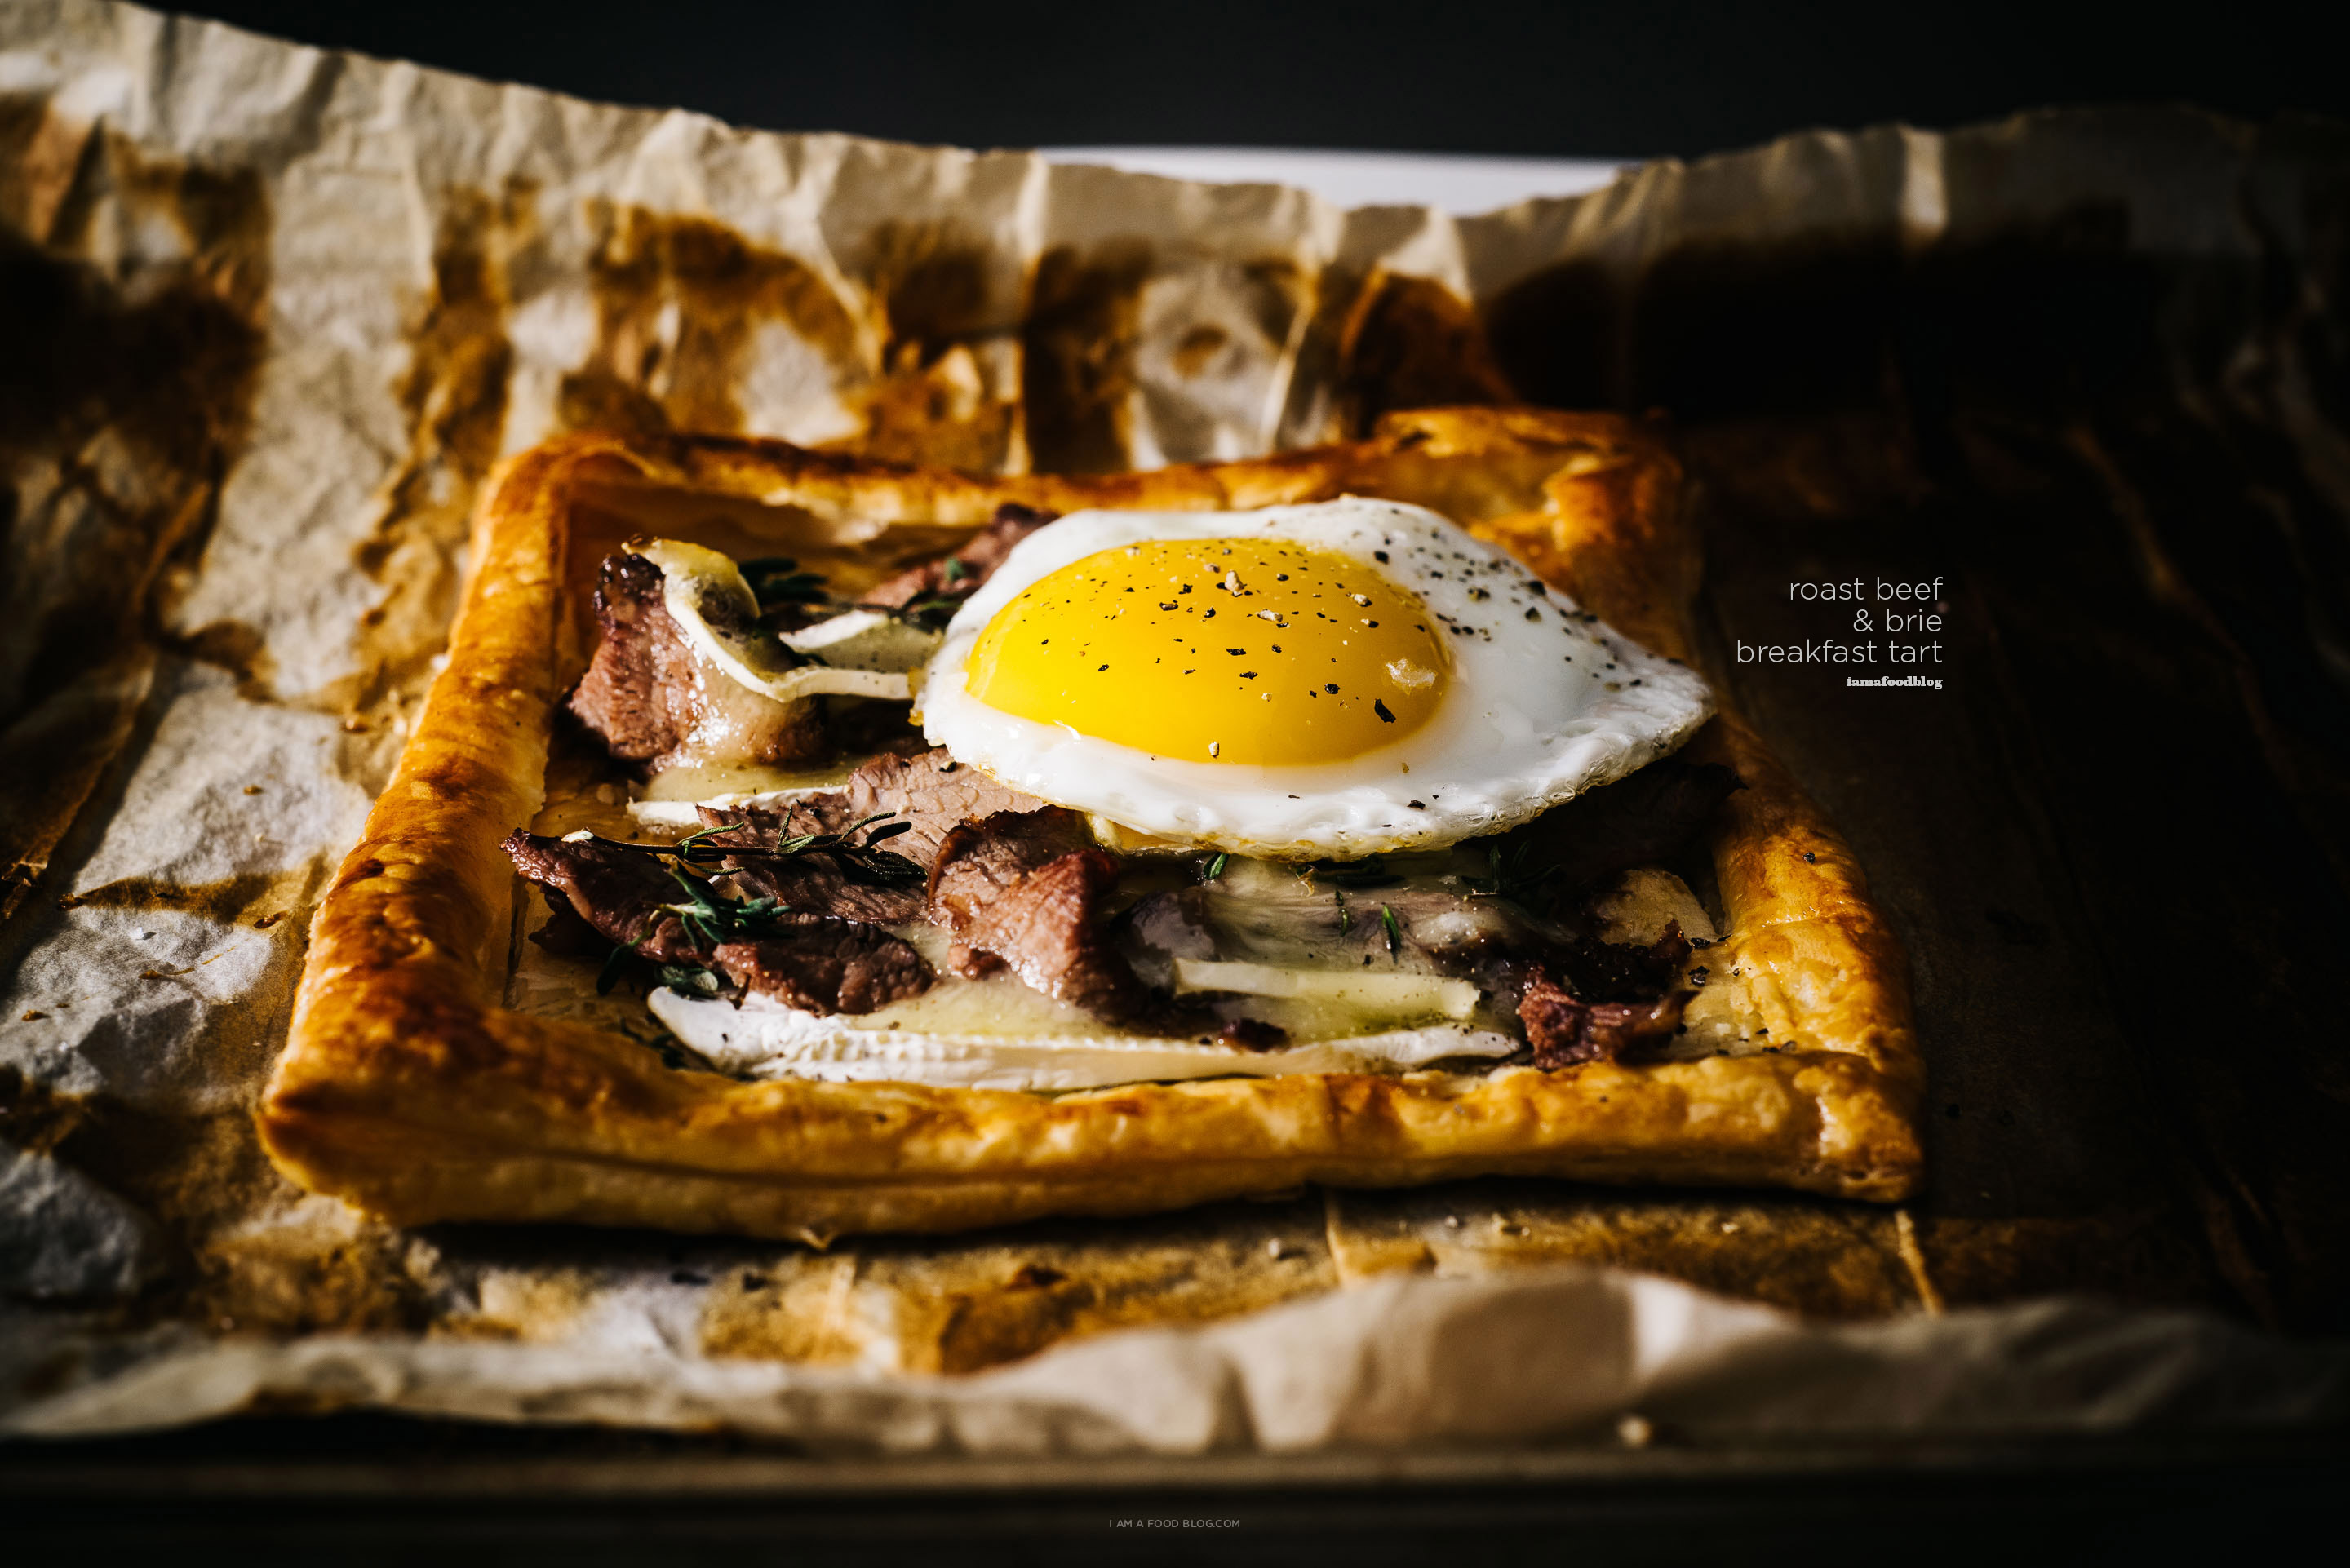 roast beef and brie breakfast tart recipe - www.iamafoodblog.com